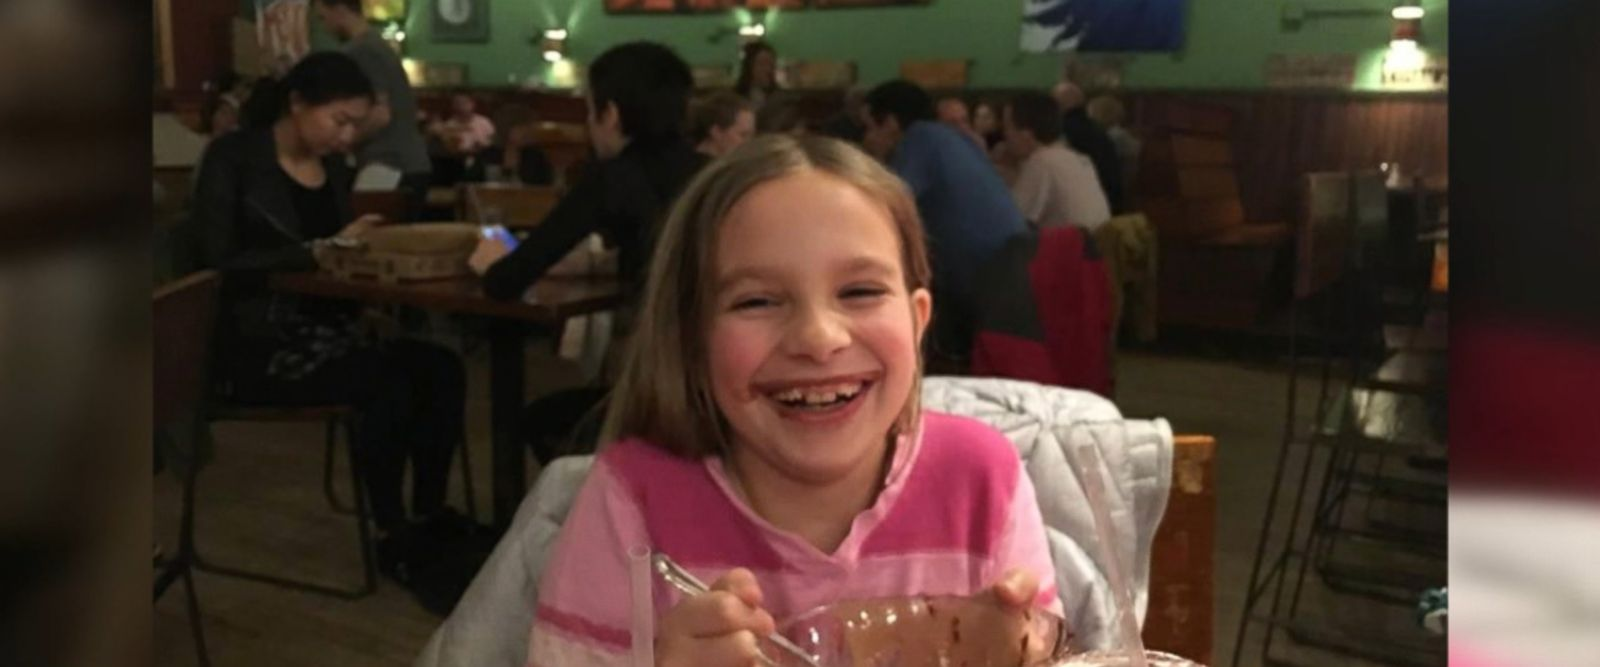 Ciara Brill, 9, was diagnosed with an aggressive brain tumor on Dec. 29, 2016.